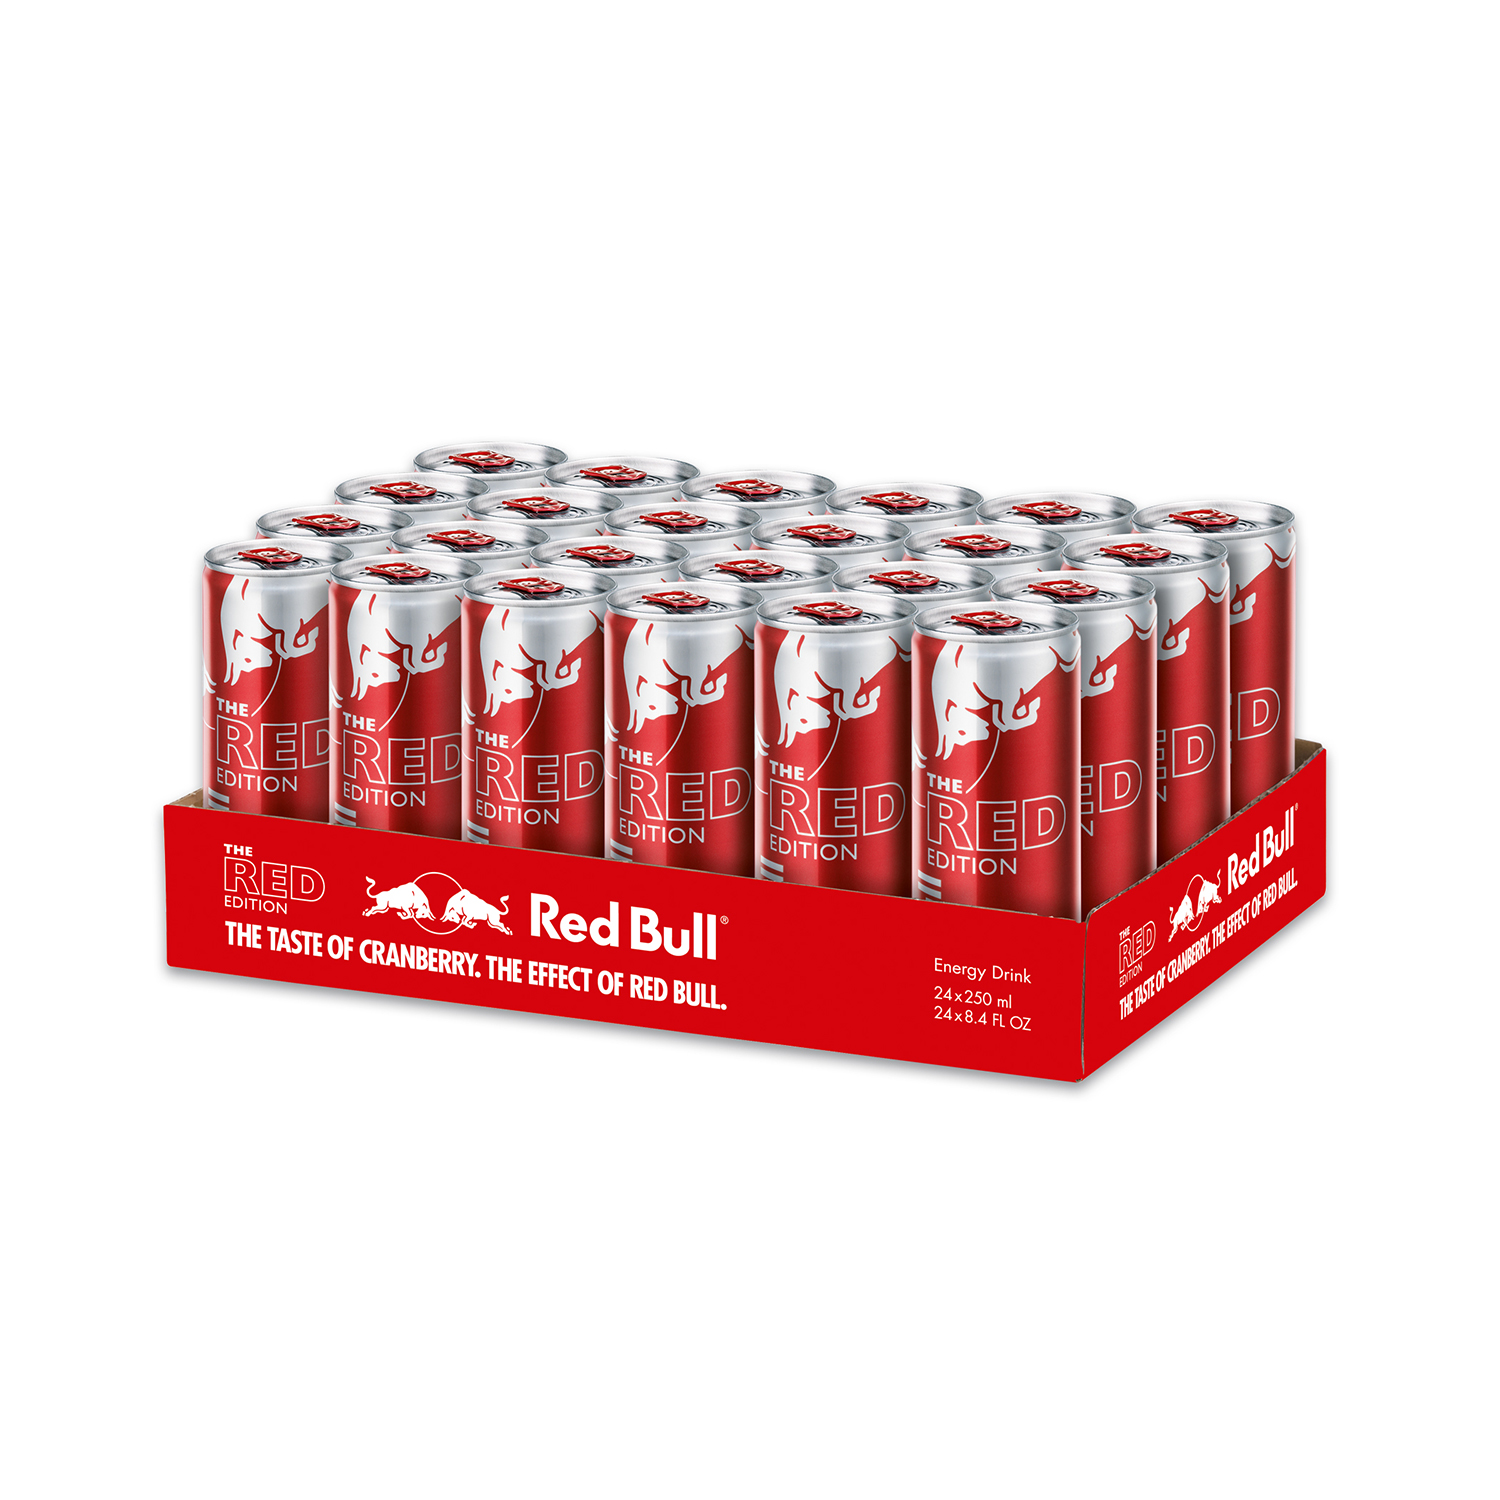 Red Bull 24-Pack 8.4oz Red Edition Energy Drink